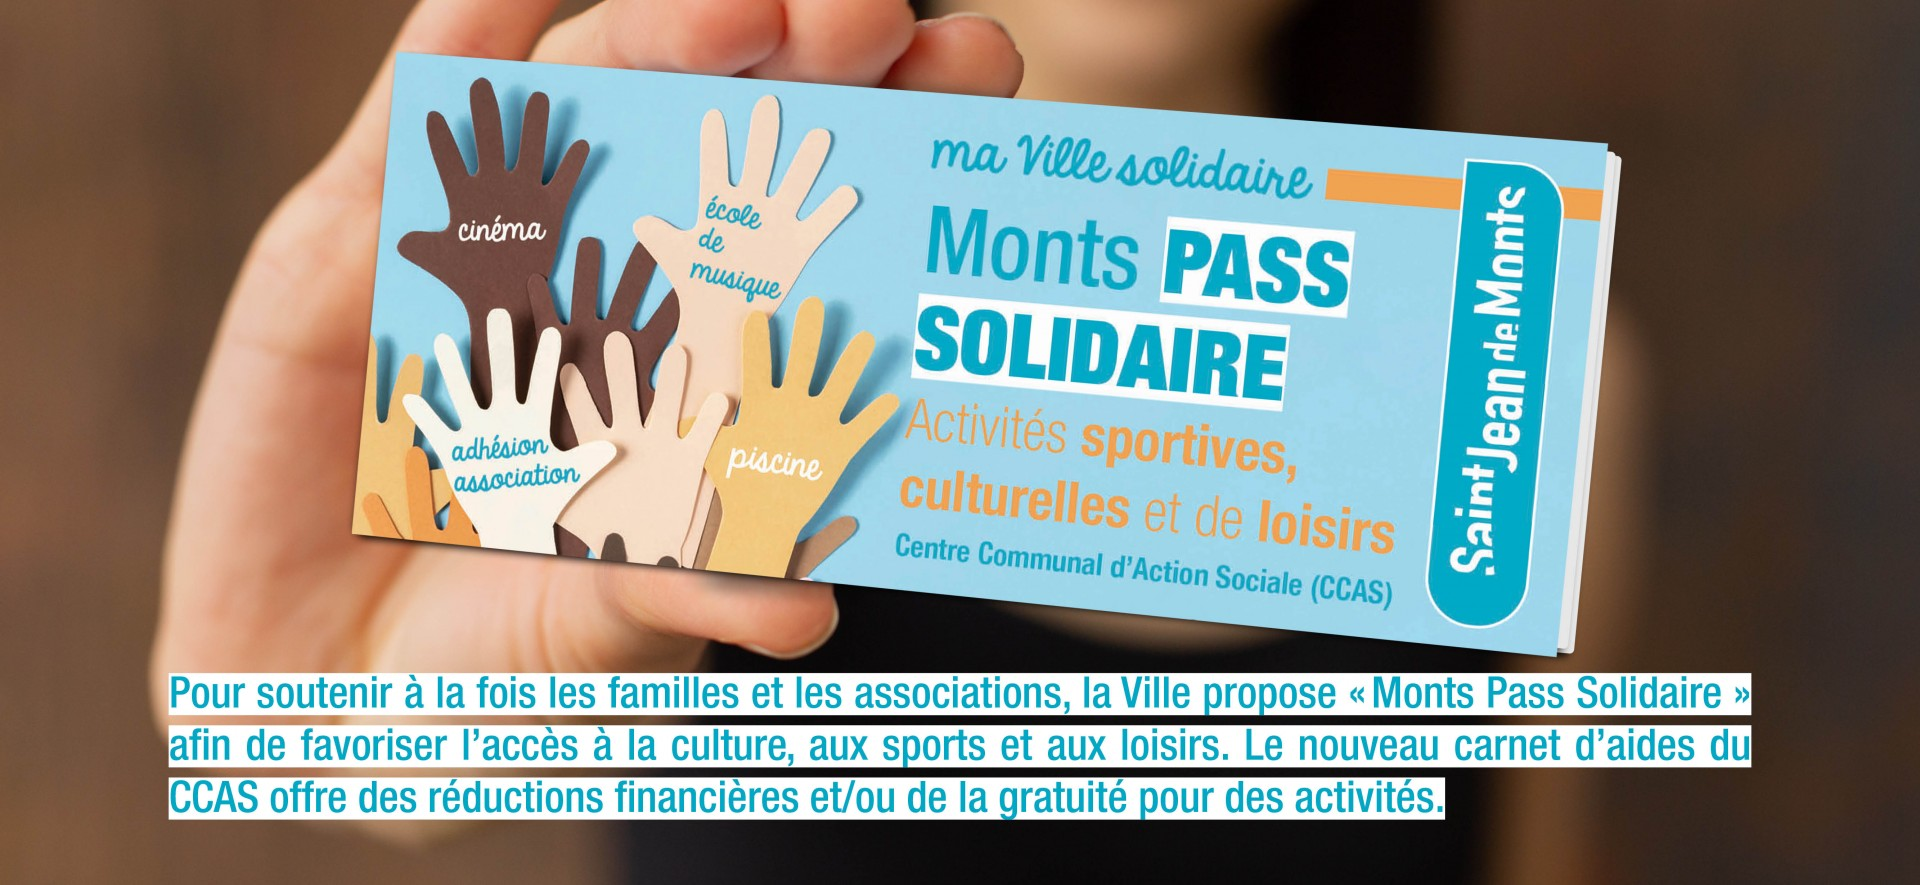 MONTS PASS SOLIDAIRE